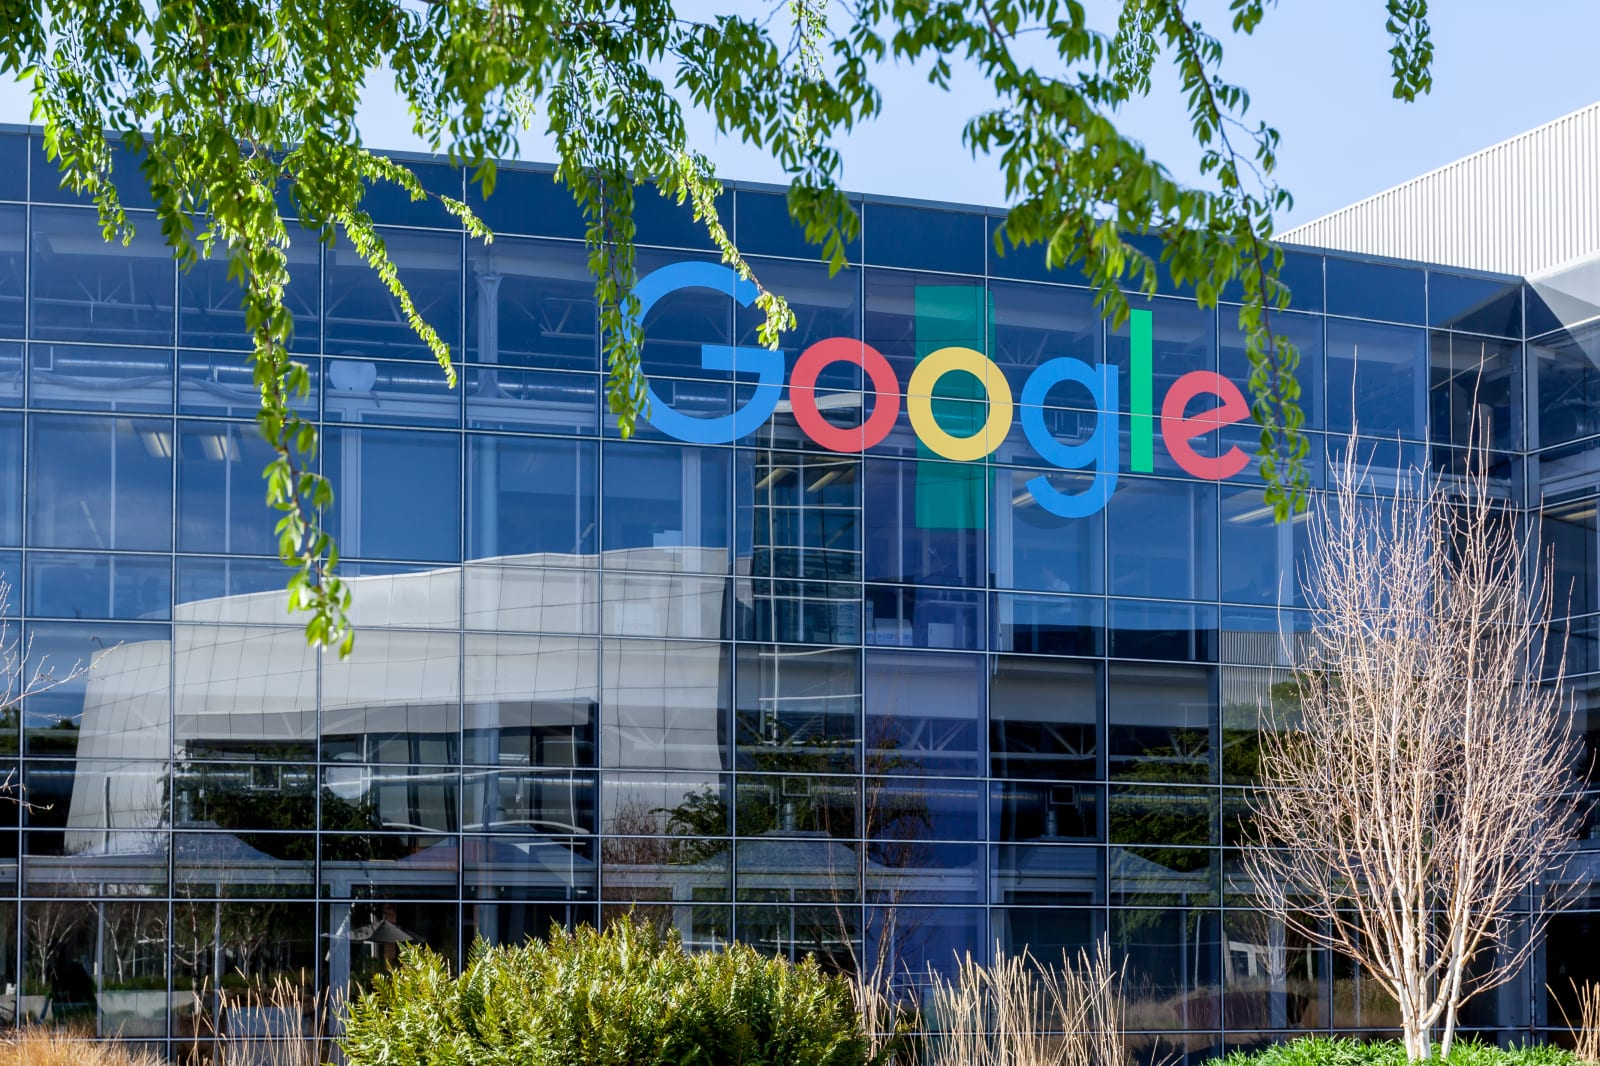 Google will pay $11 million to settle hundreds of age discrimination suits